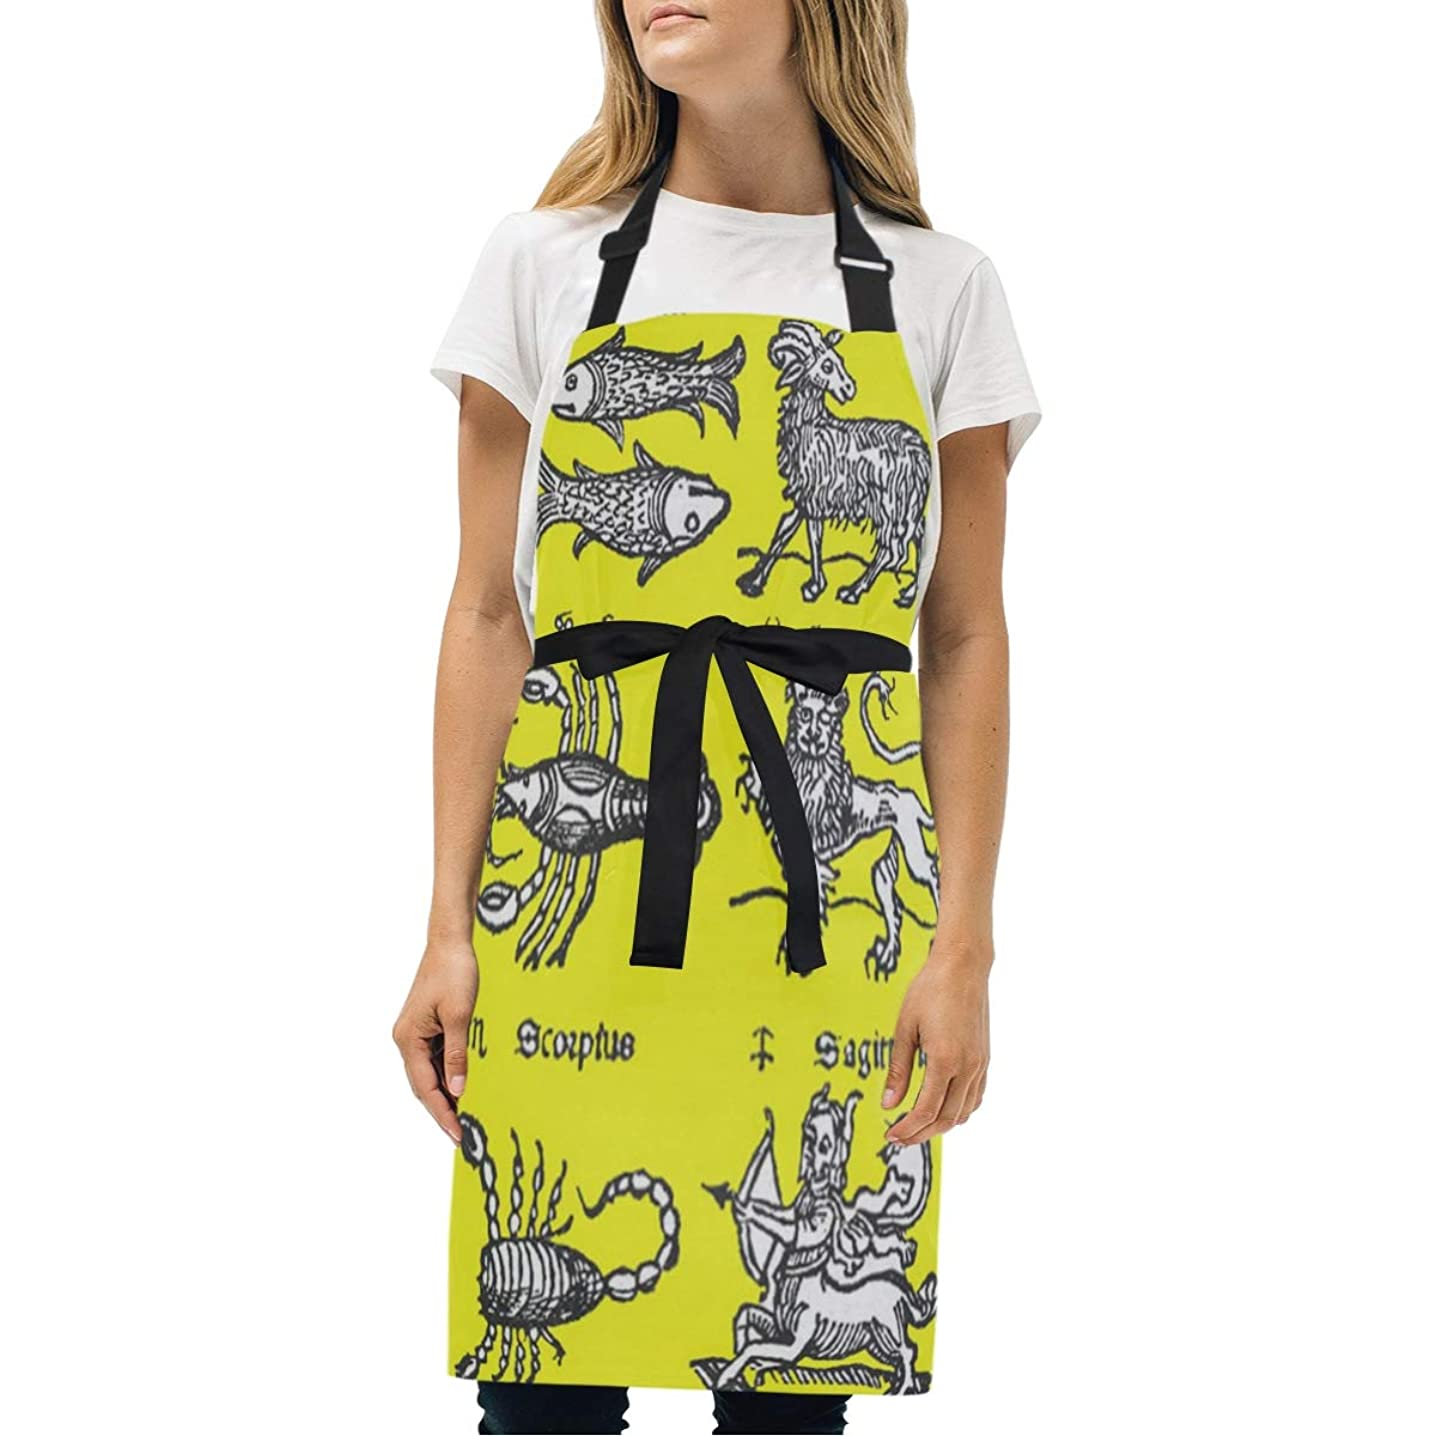 YIXKC Apron Signs of The Zodiac Adjustable Neck with 2 Pockets Bib Apron for Family/Kitchen/Chef/Unisex